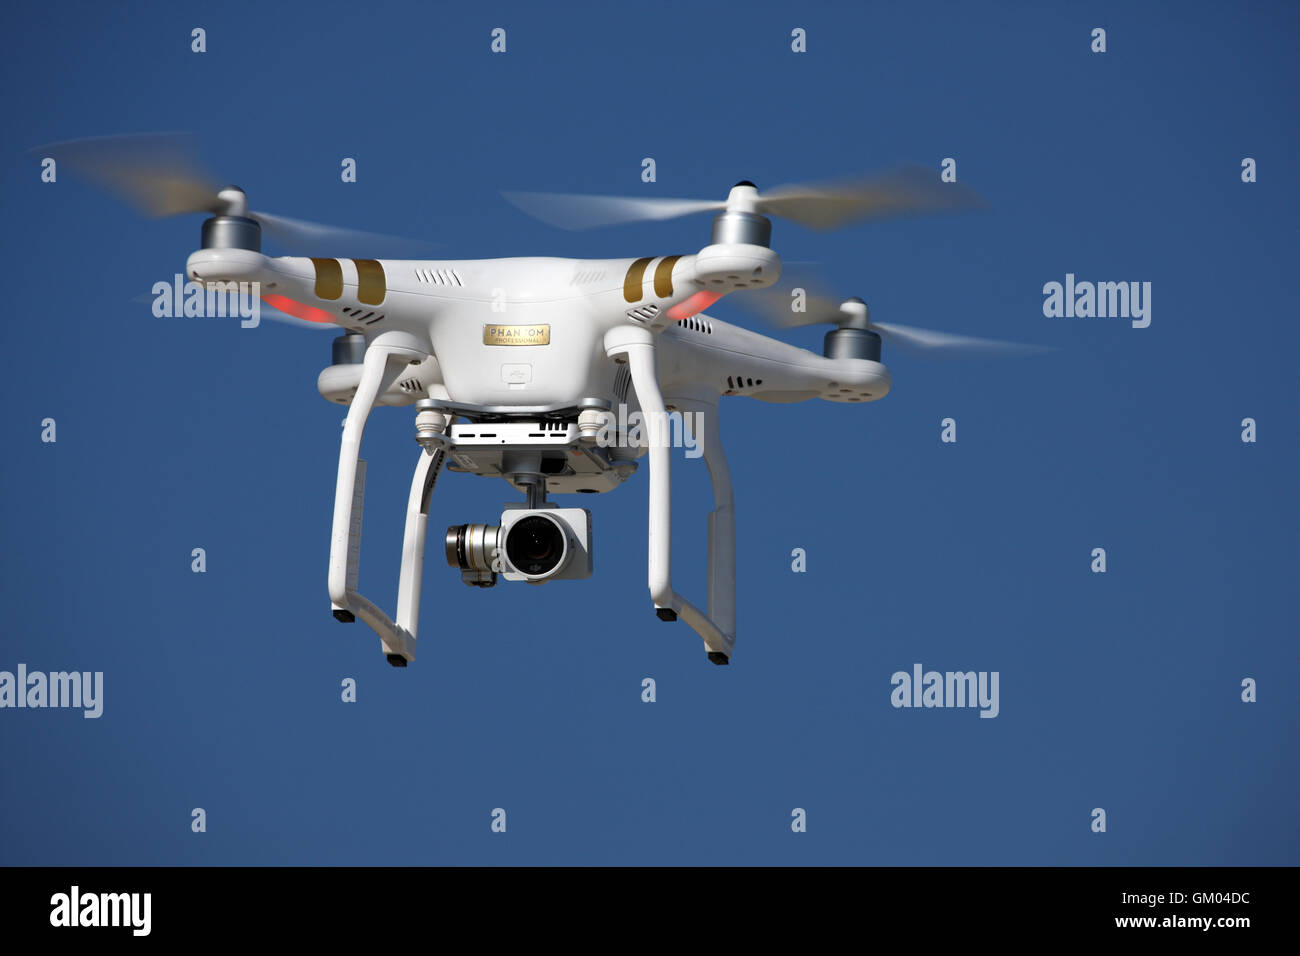 Drone in the sky - Stock Image